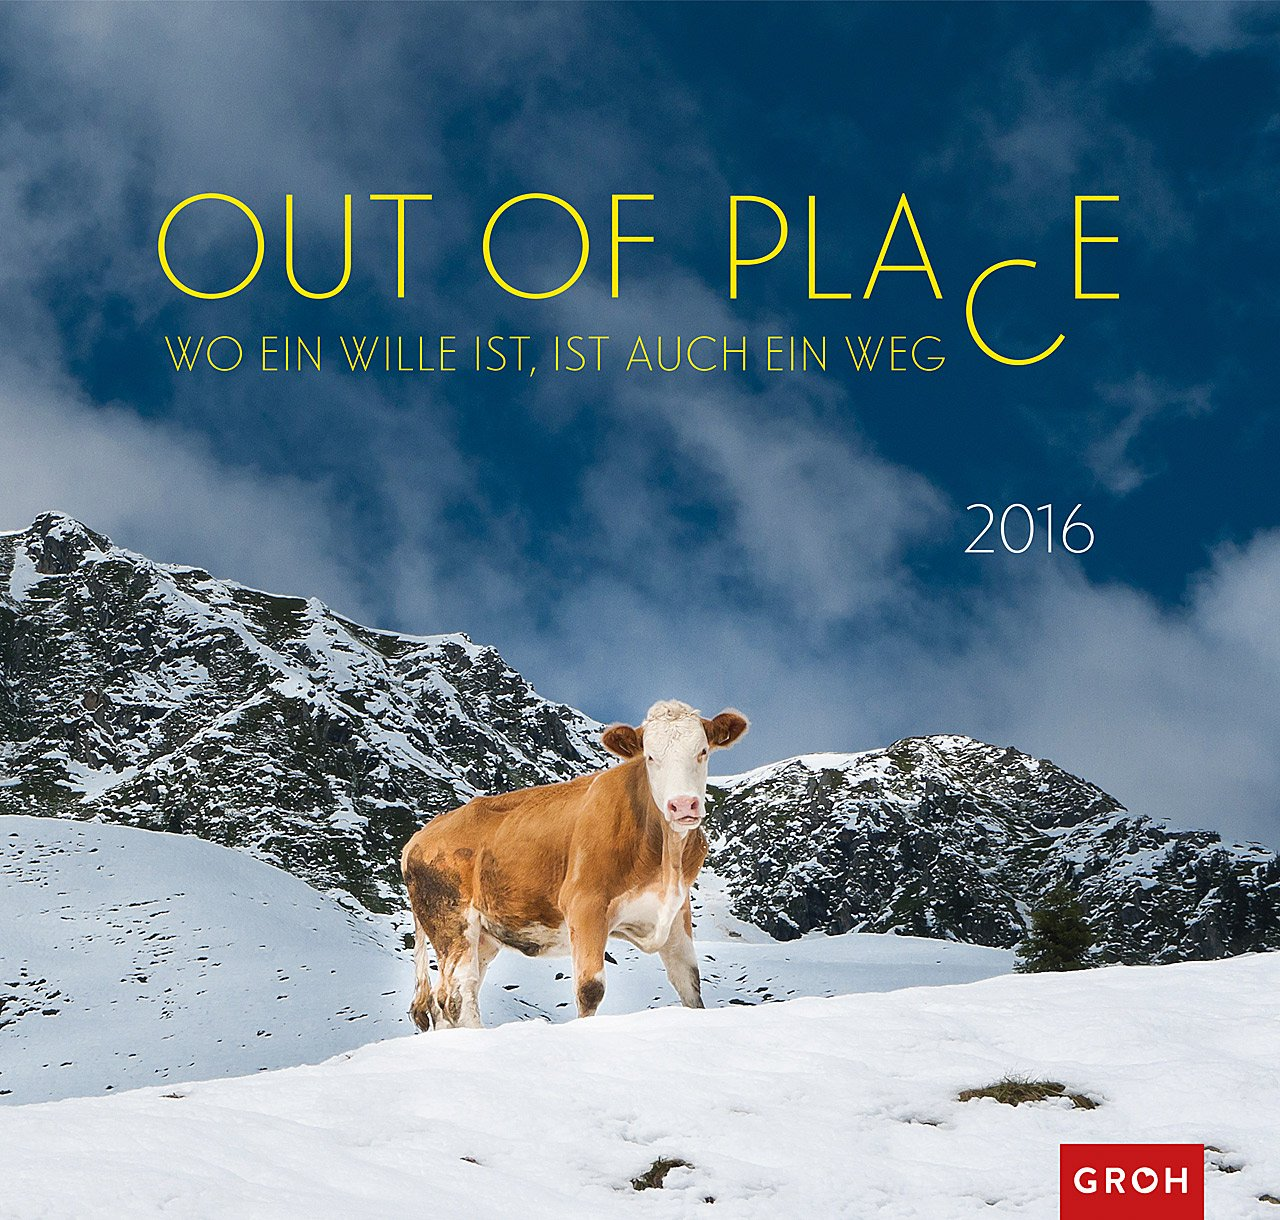 Out of place 2016